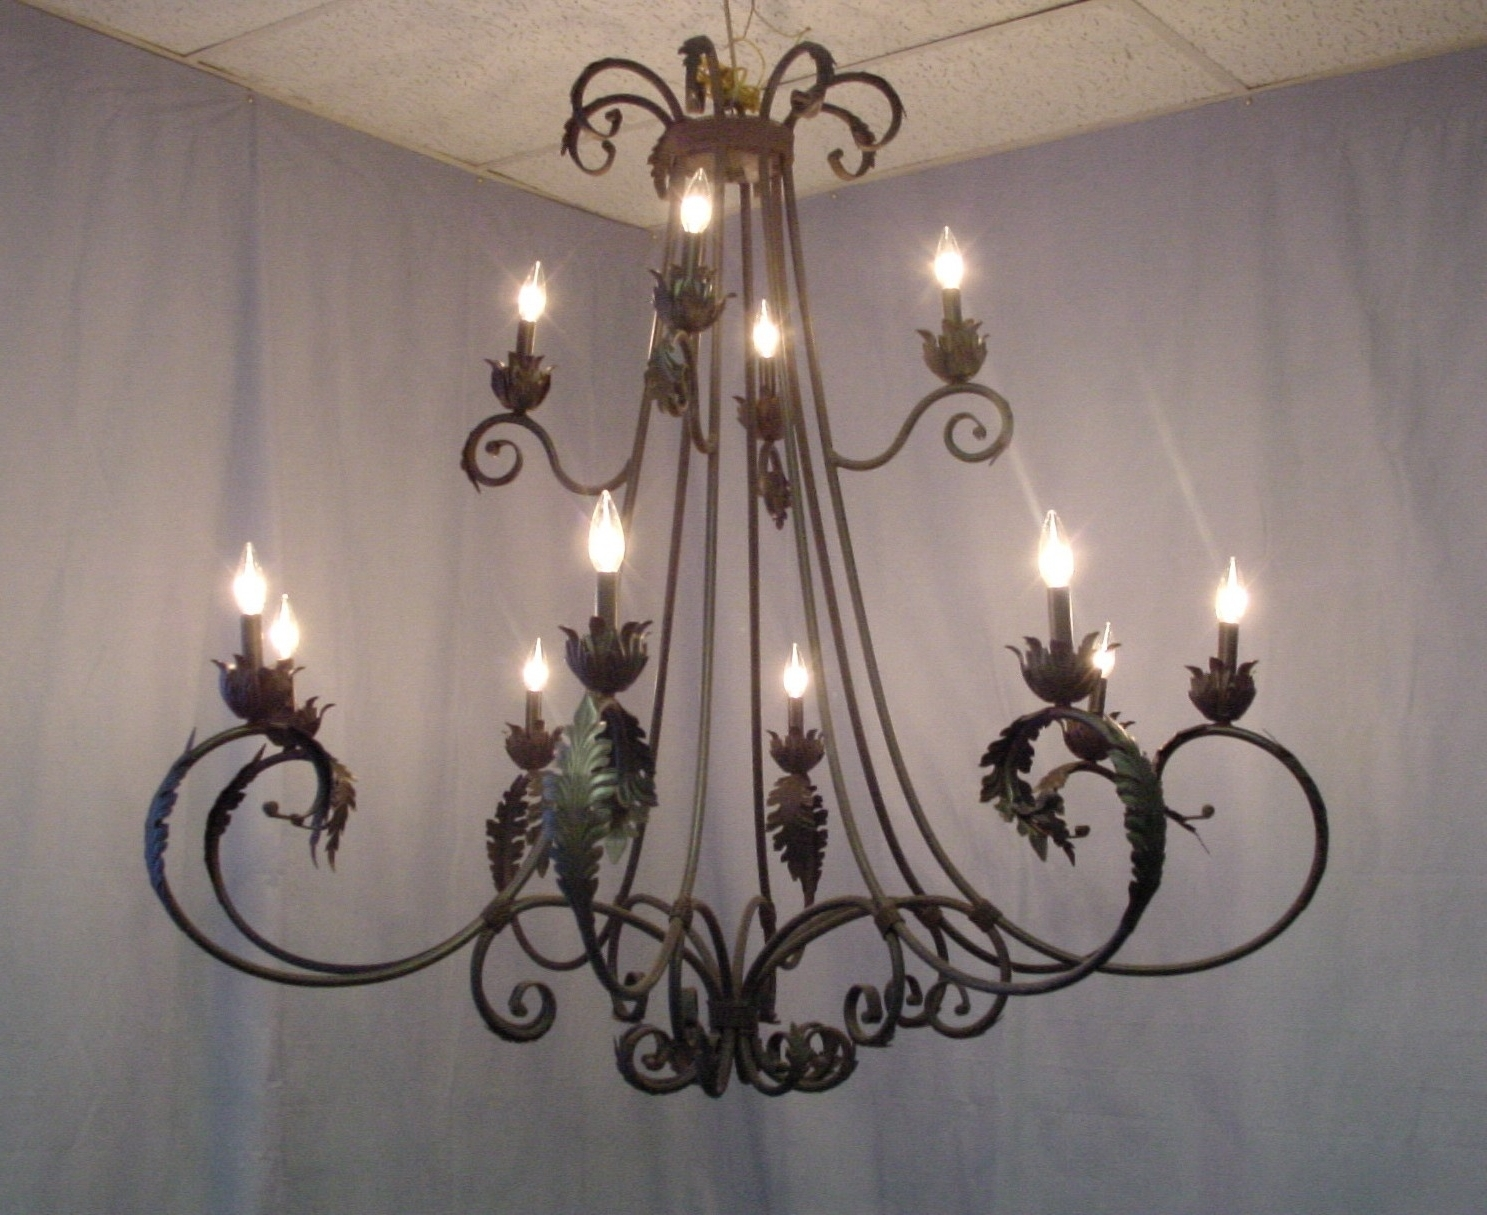 Wrought Iron Chandeliers Pertaining To Best And Newest Wrought Iron Chandeliers With Crystal Accents : Lamp World (View 14 of 15)